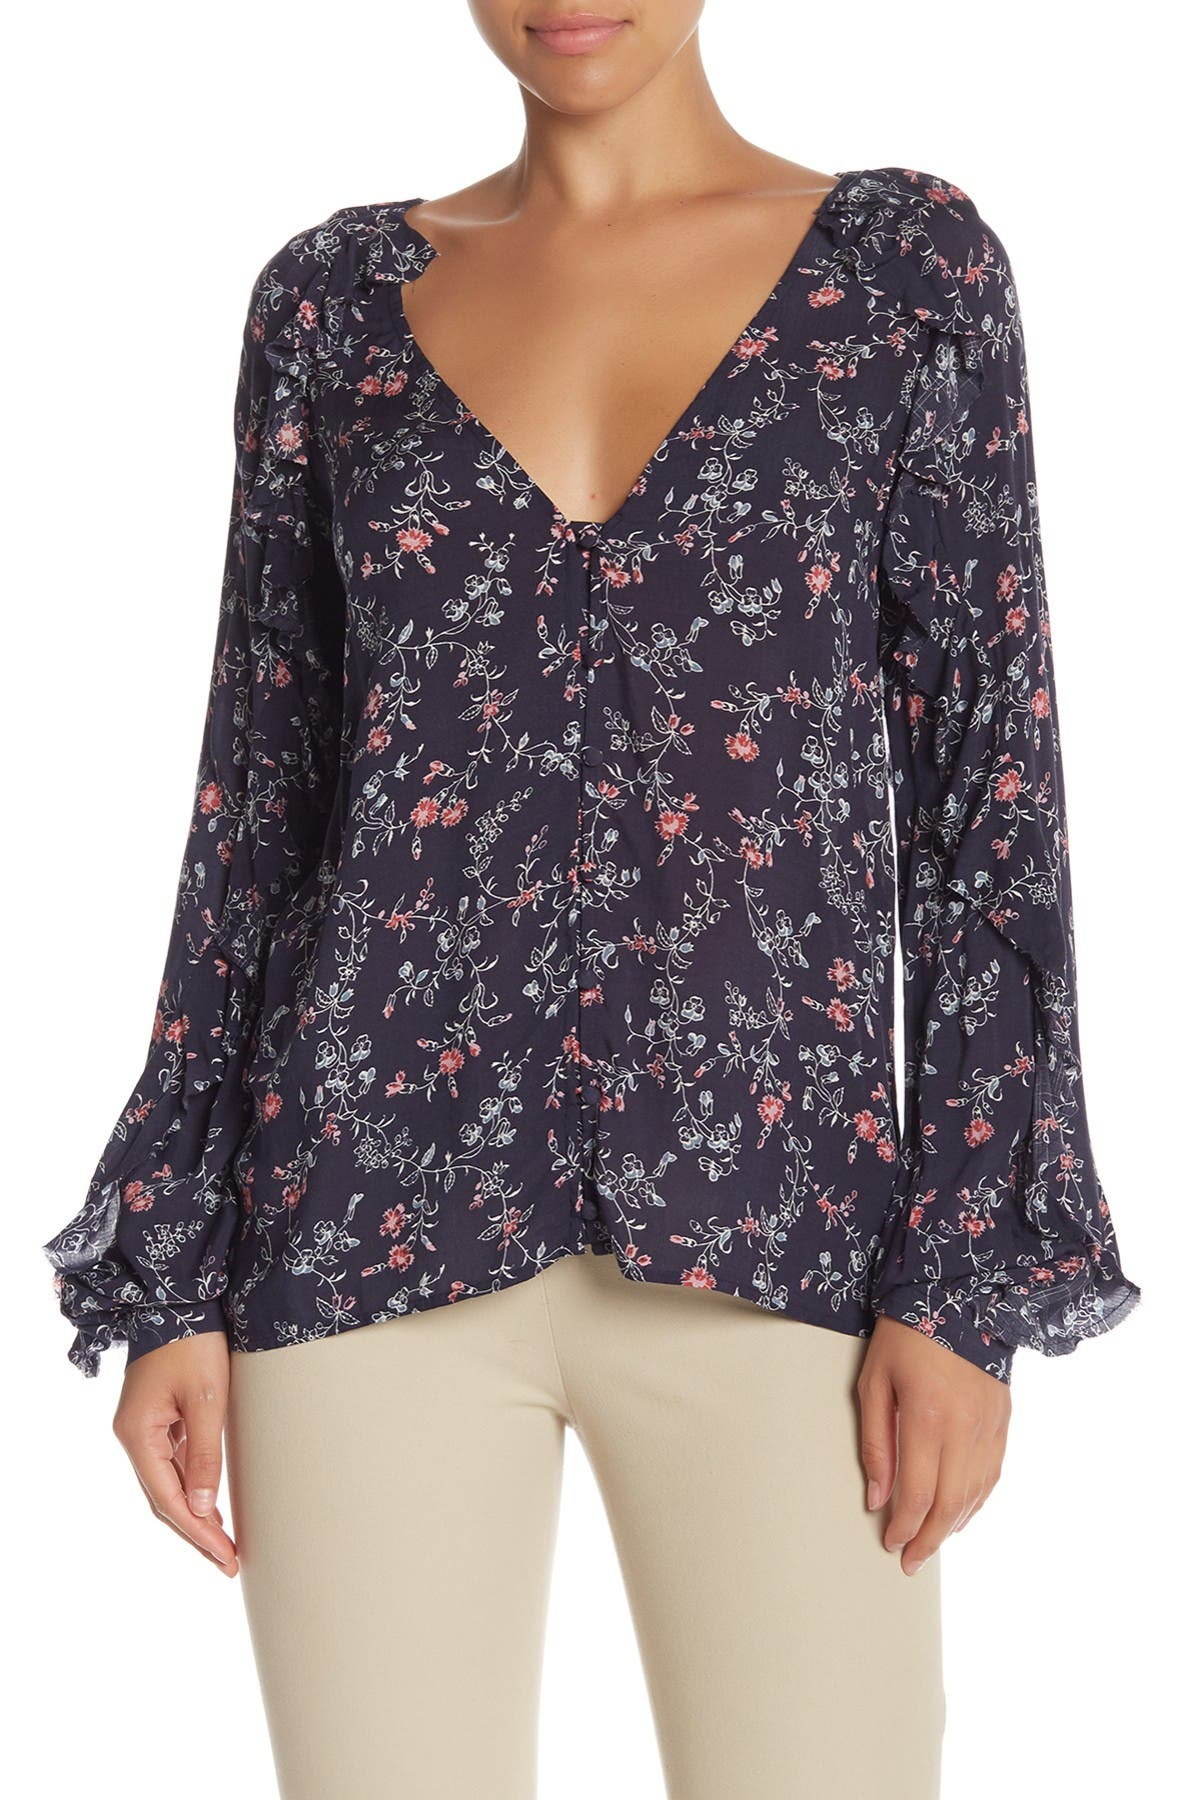 Image of PAIGE Kenna Floral Print Top